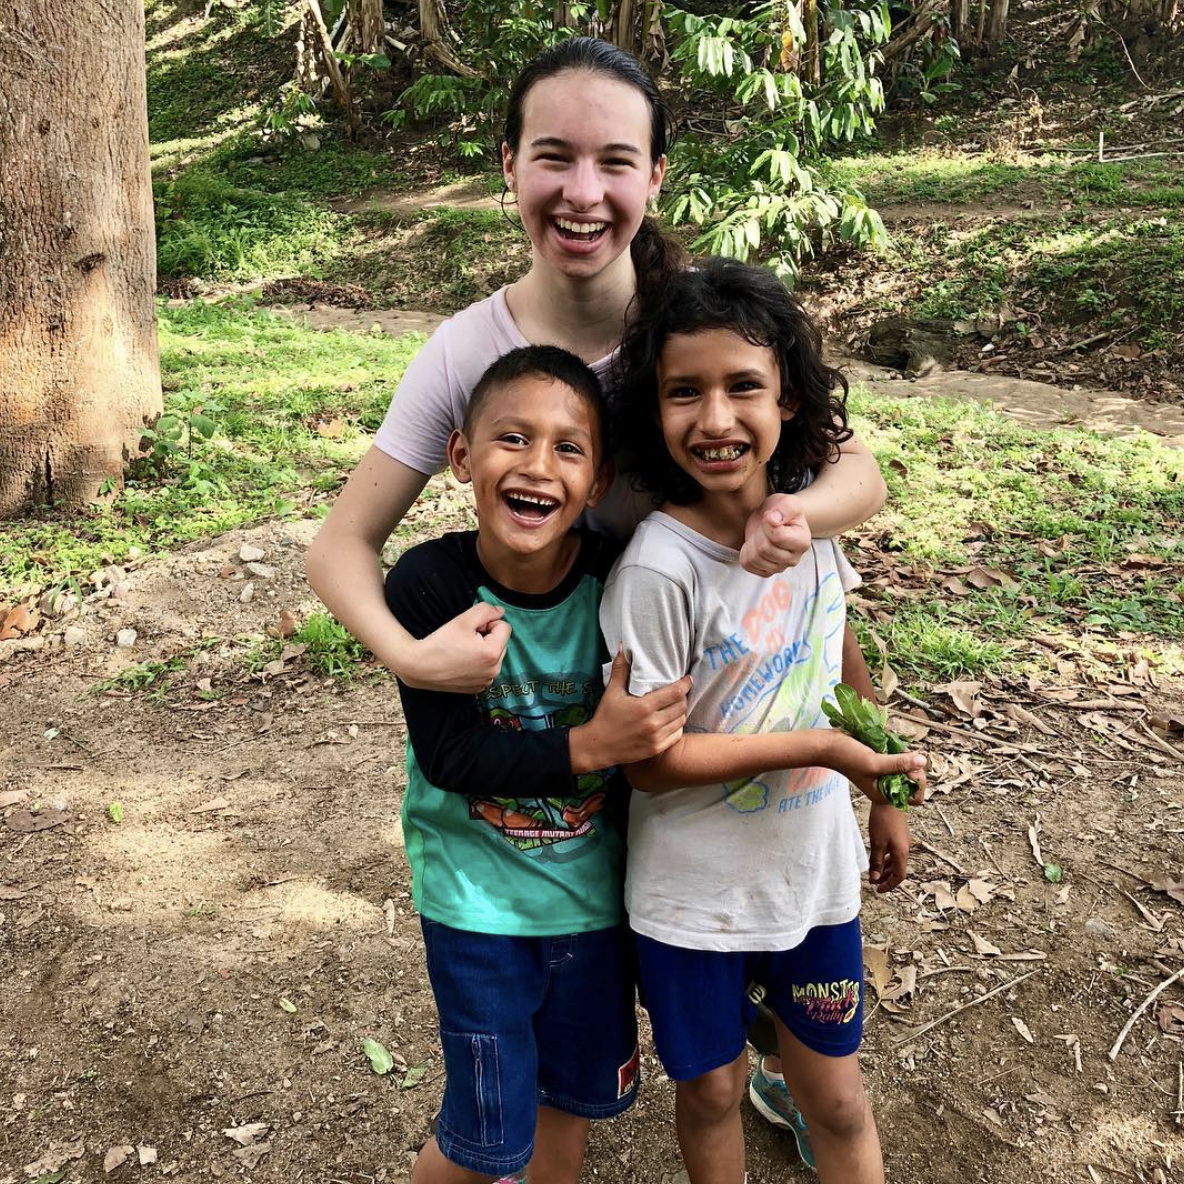 Enjoying time with these fun-loving siblings during one of Alexa's visit to Amigos de Jesús in Honduras.